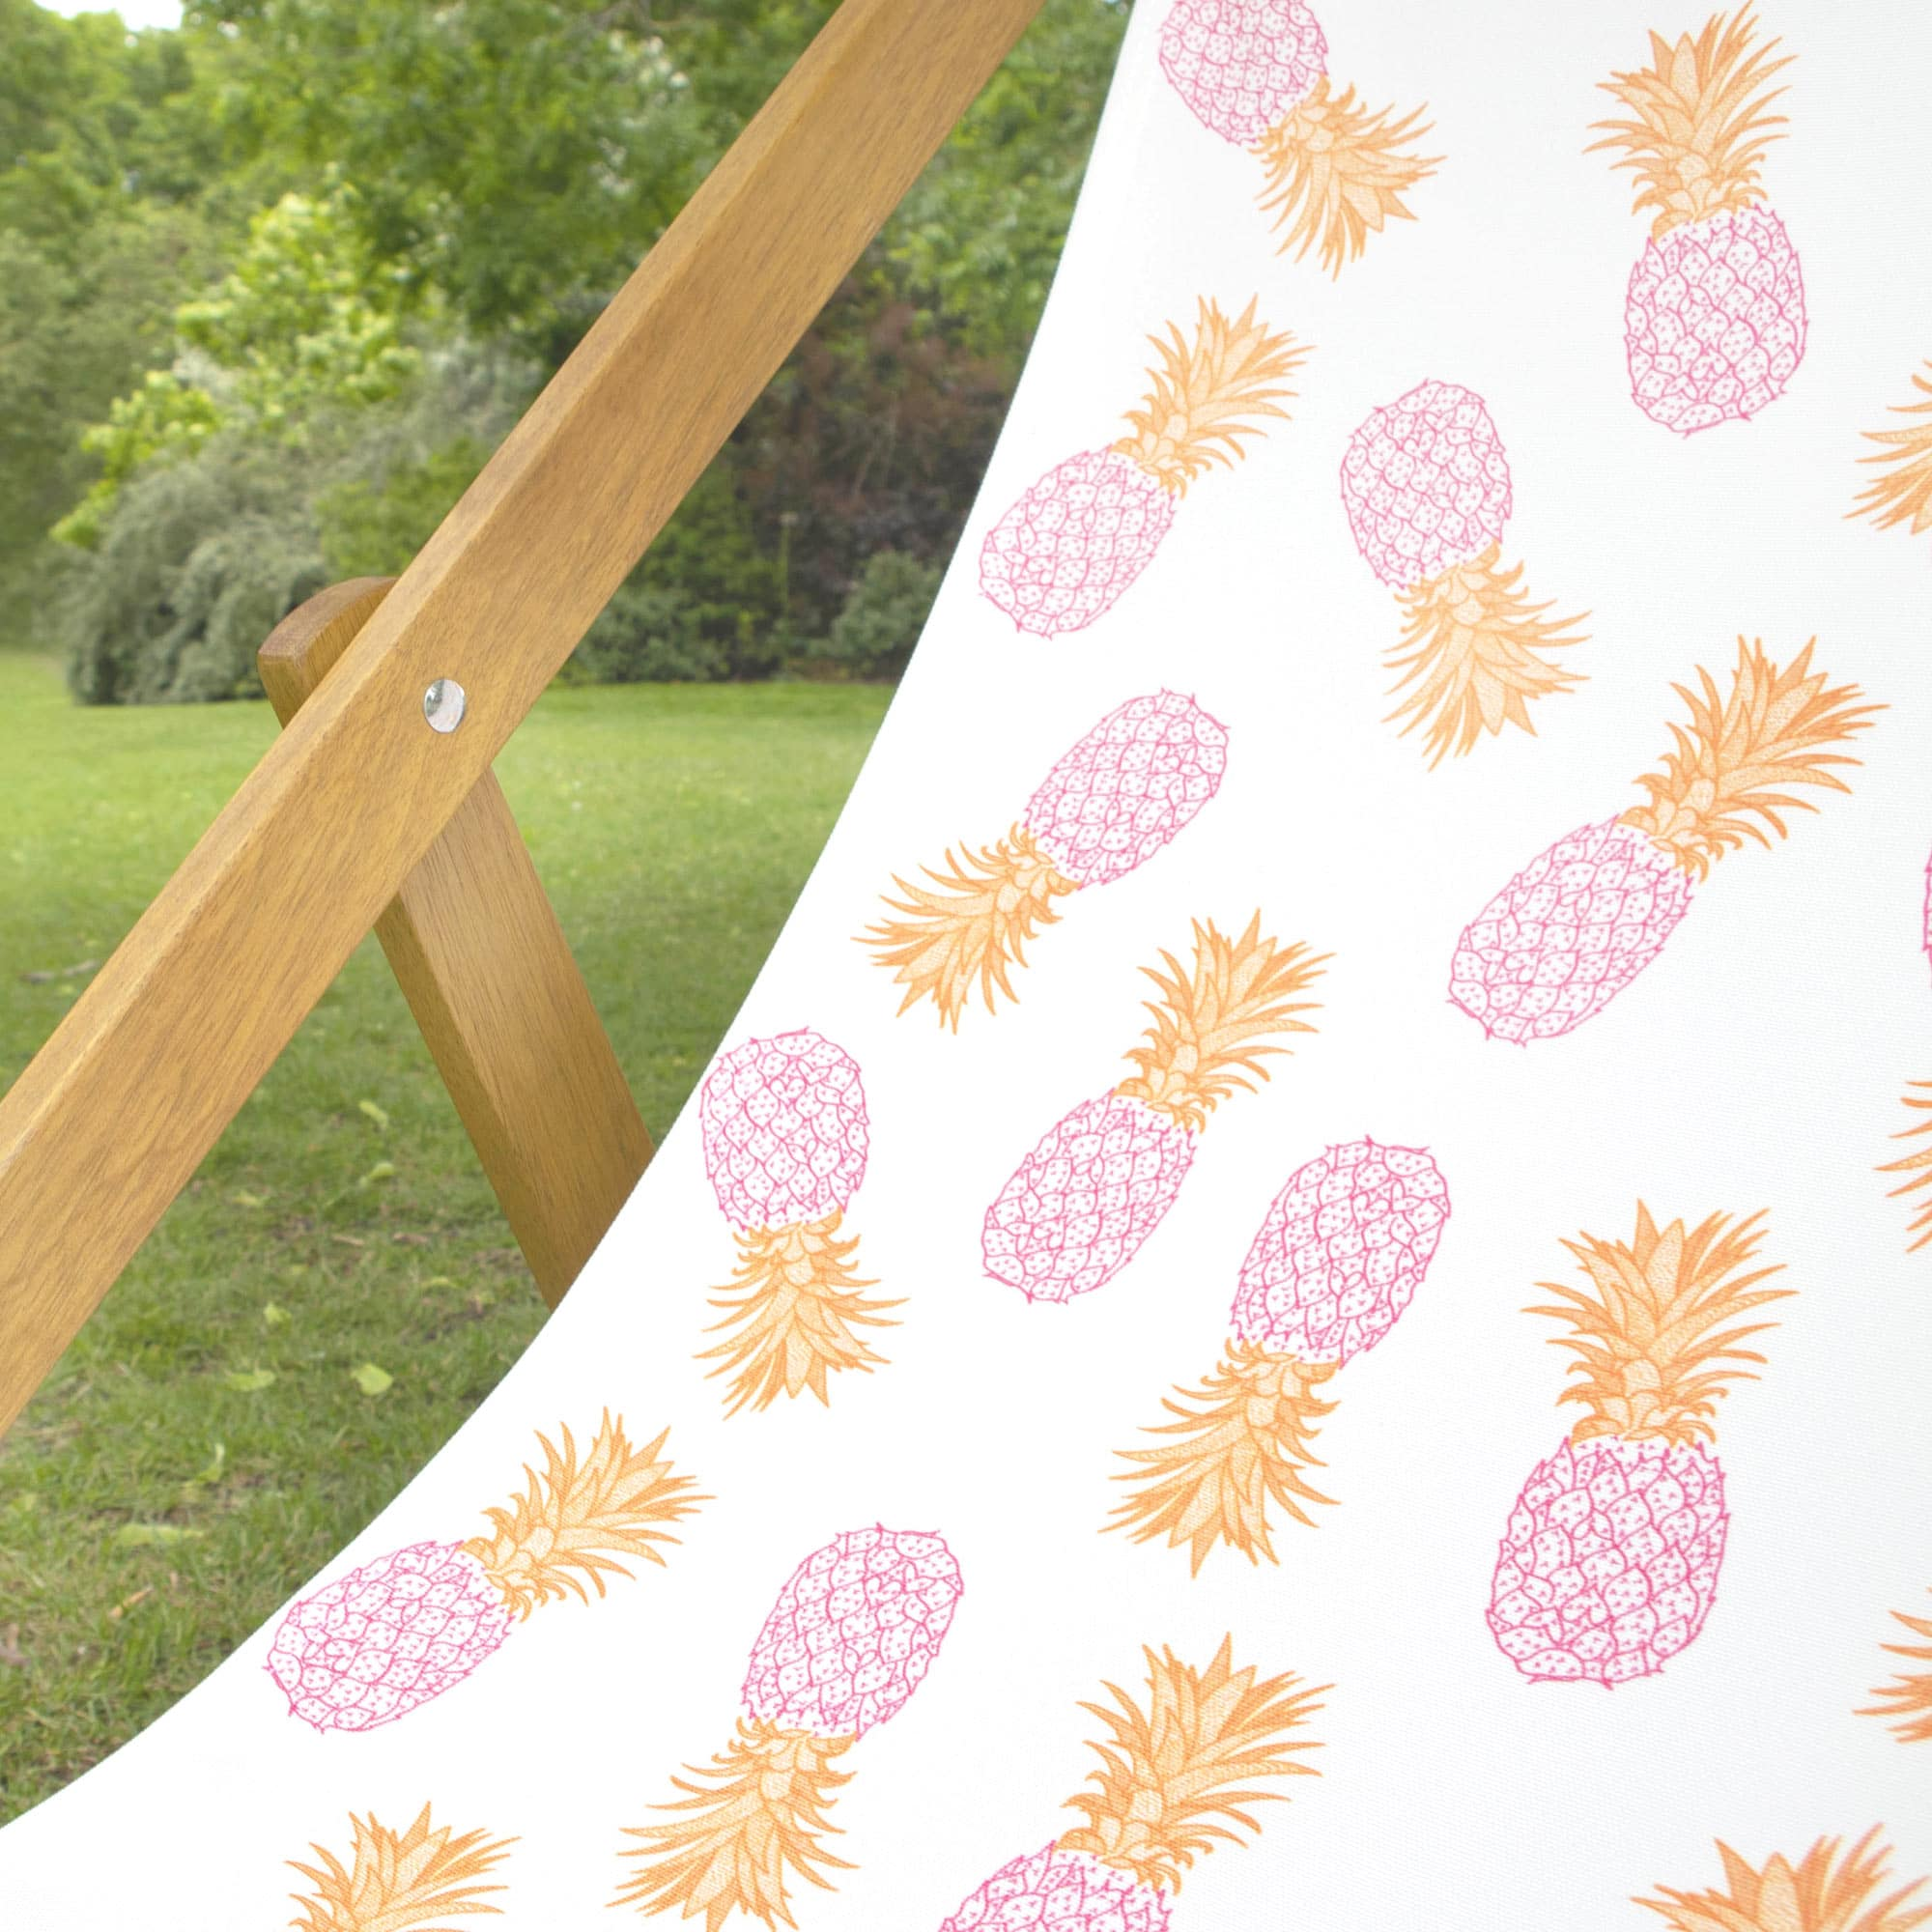 Fine Cell Work Wooden Pineapple Beach Garden Deckchair Pink Orange White